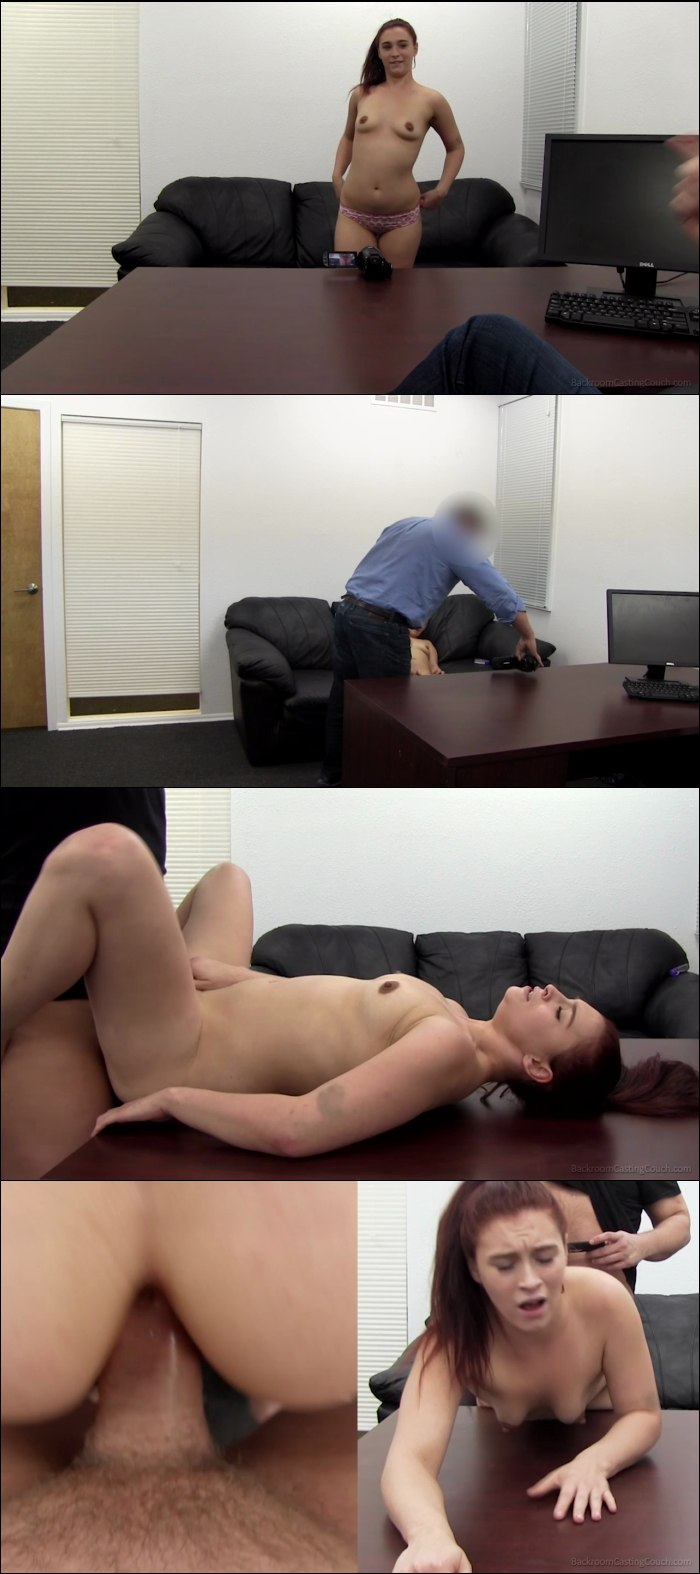 Porn Casting Anal Amateur forumophilia - porn forum : young girls at the casting - page 7